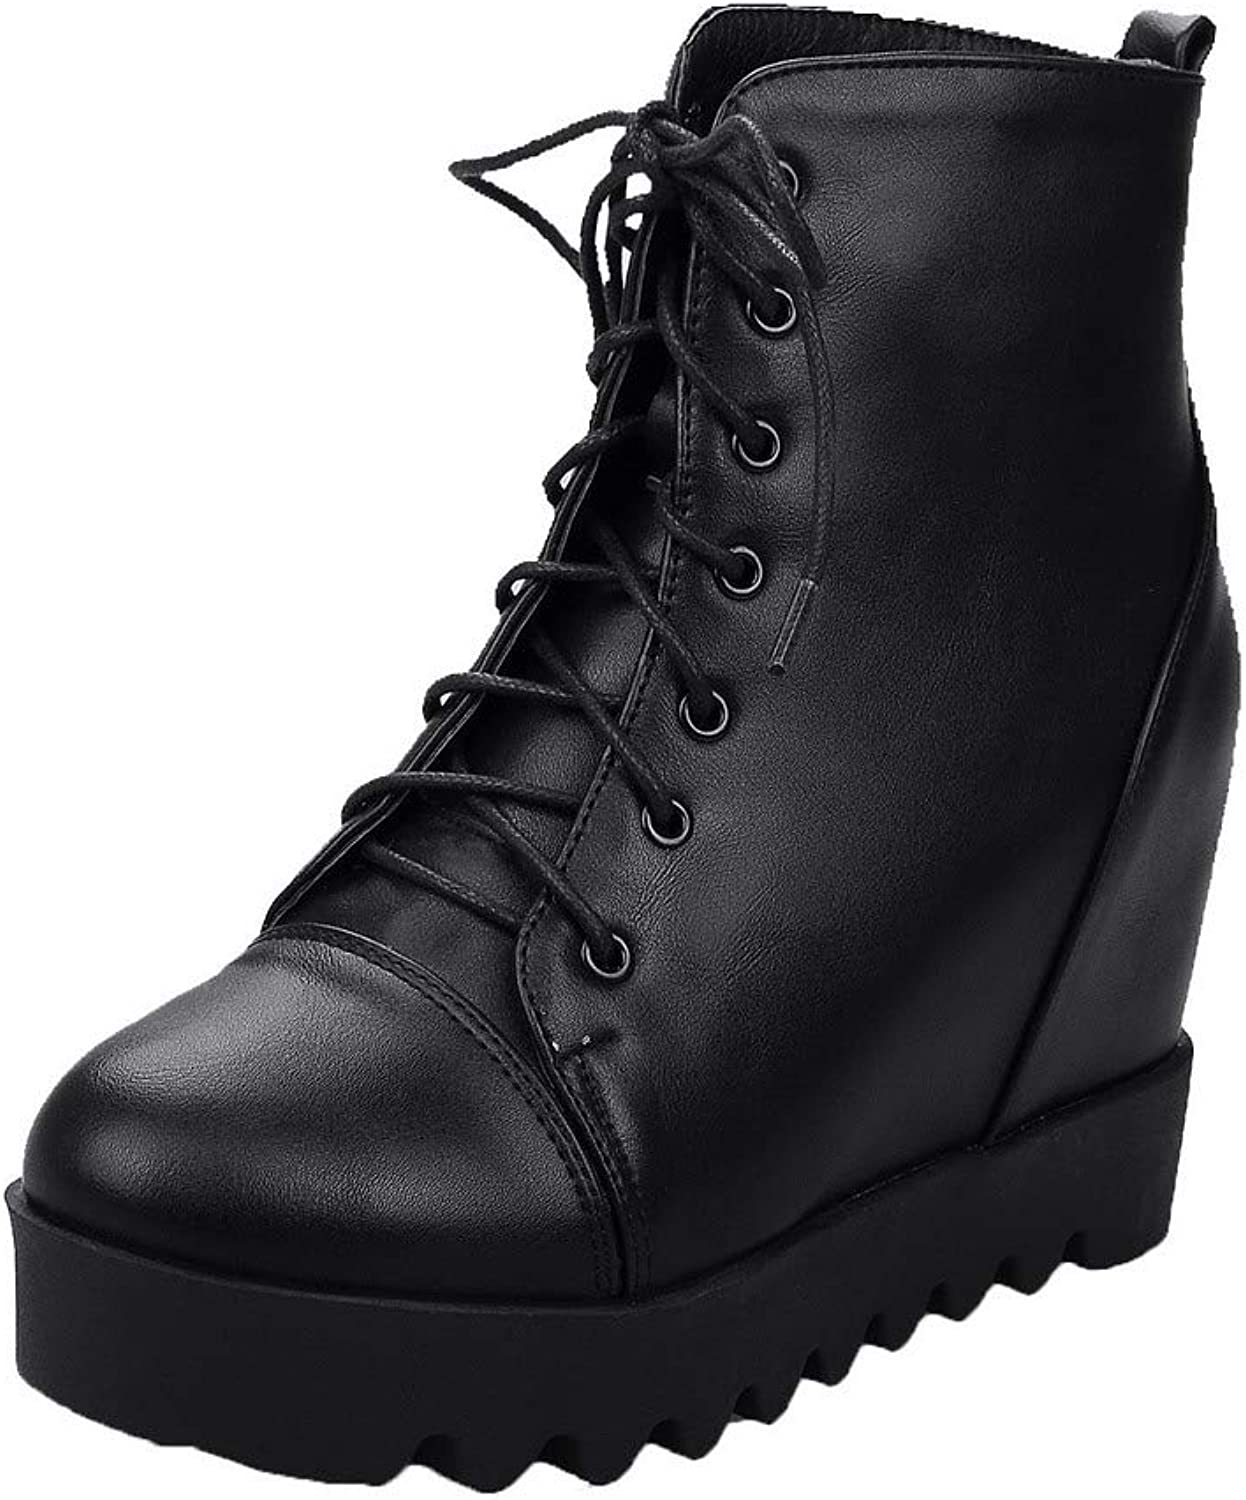 WeenFashion Women's High-Heels Pu Low-Top Solid Lace-Up Boots, AMGXX128070